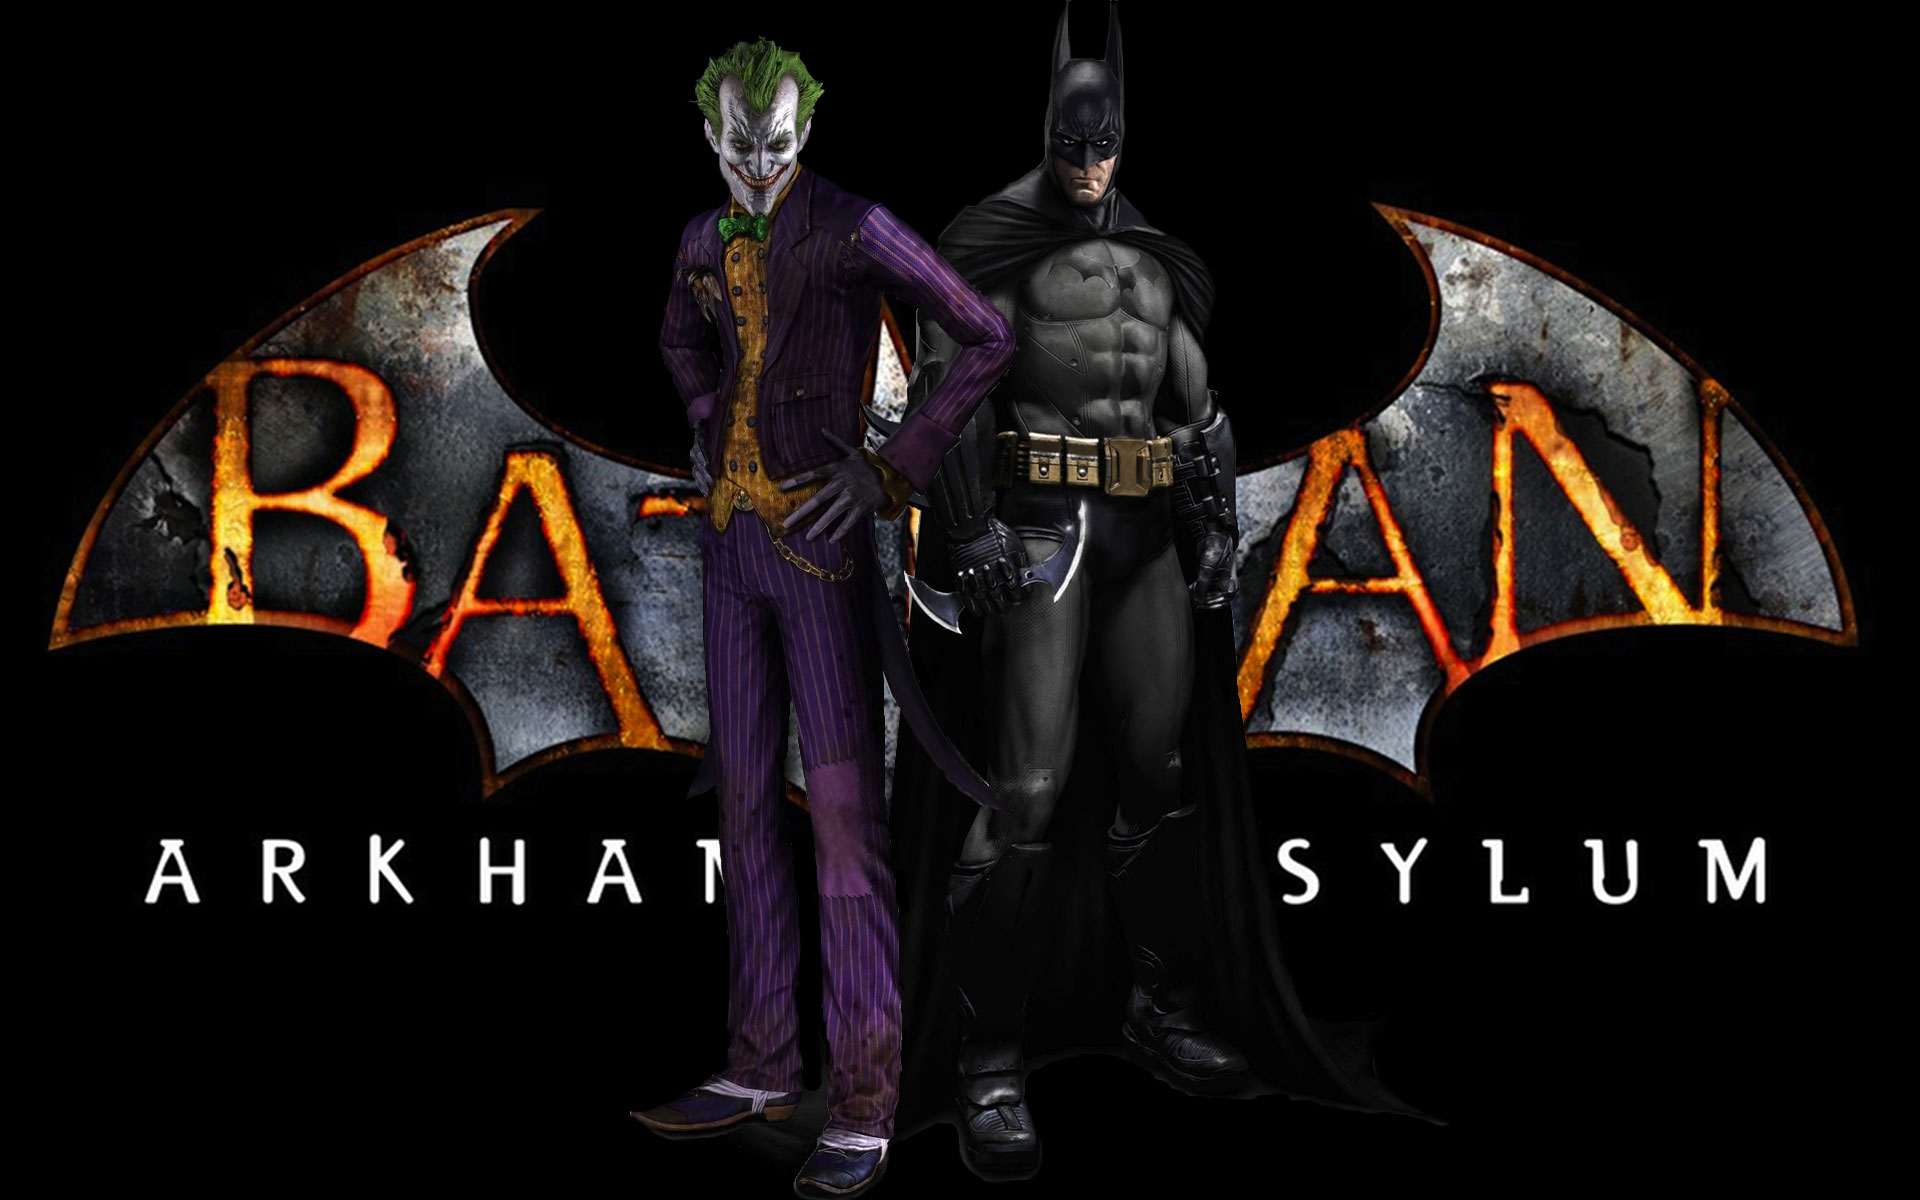 Batman Arkham Asylum Wallpapers 5670 Hd Wallpapers in Games   Imagesci 1920x1200